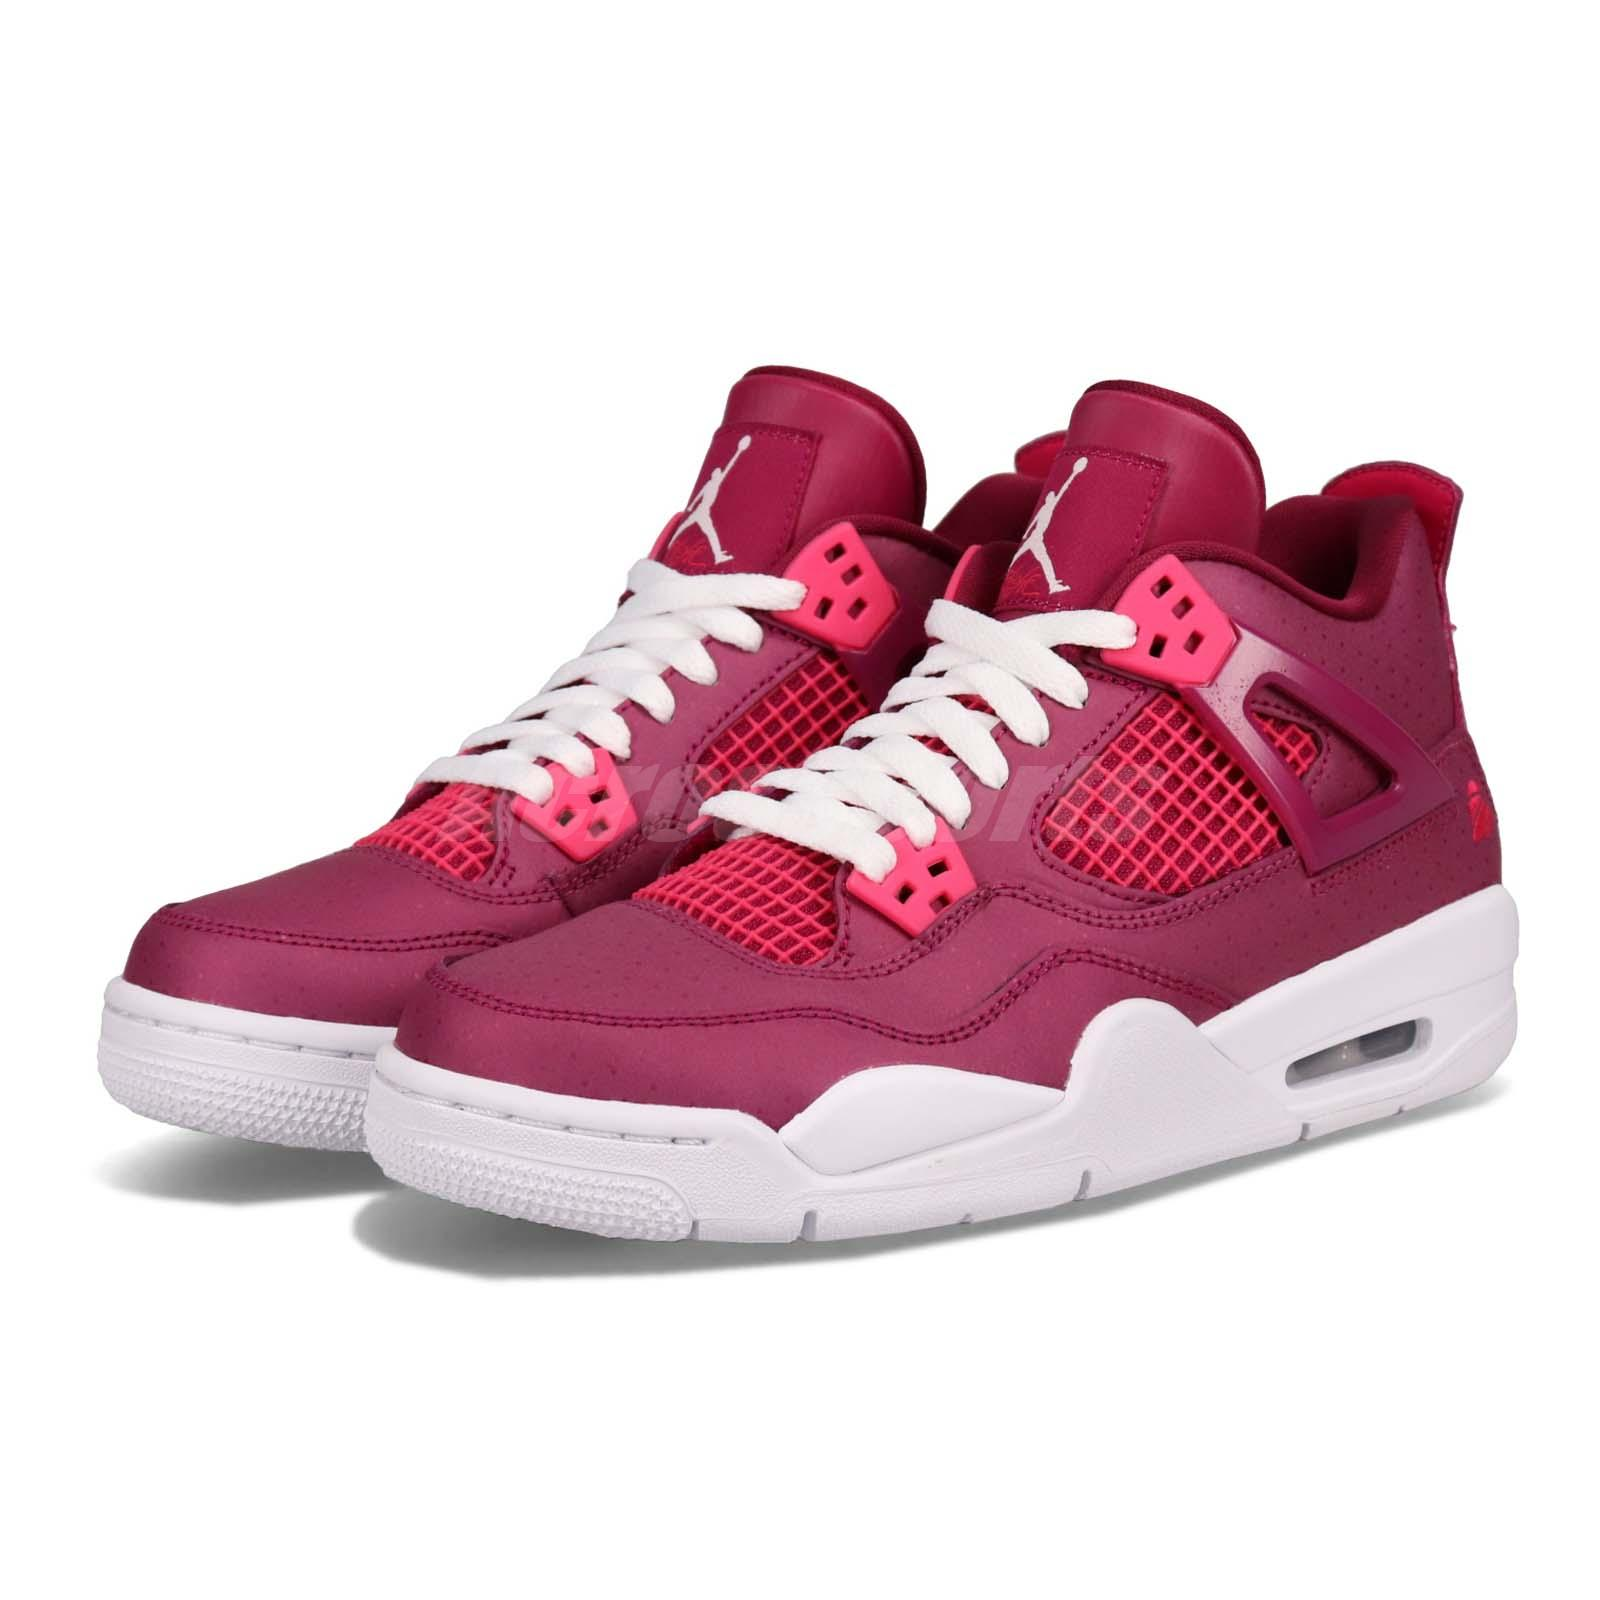 9241b2f6b9cb Details about Nike Air Jordan 4 Retro GS For The Love Of The Game Women Kid Shoes  487724-661